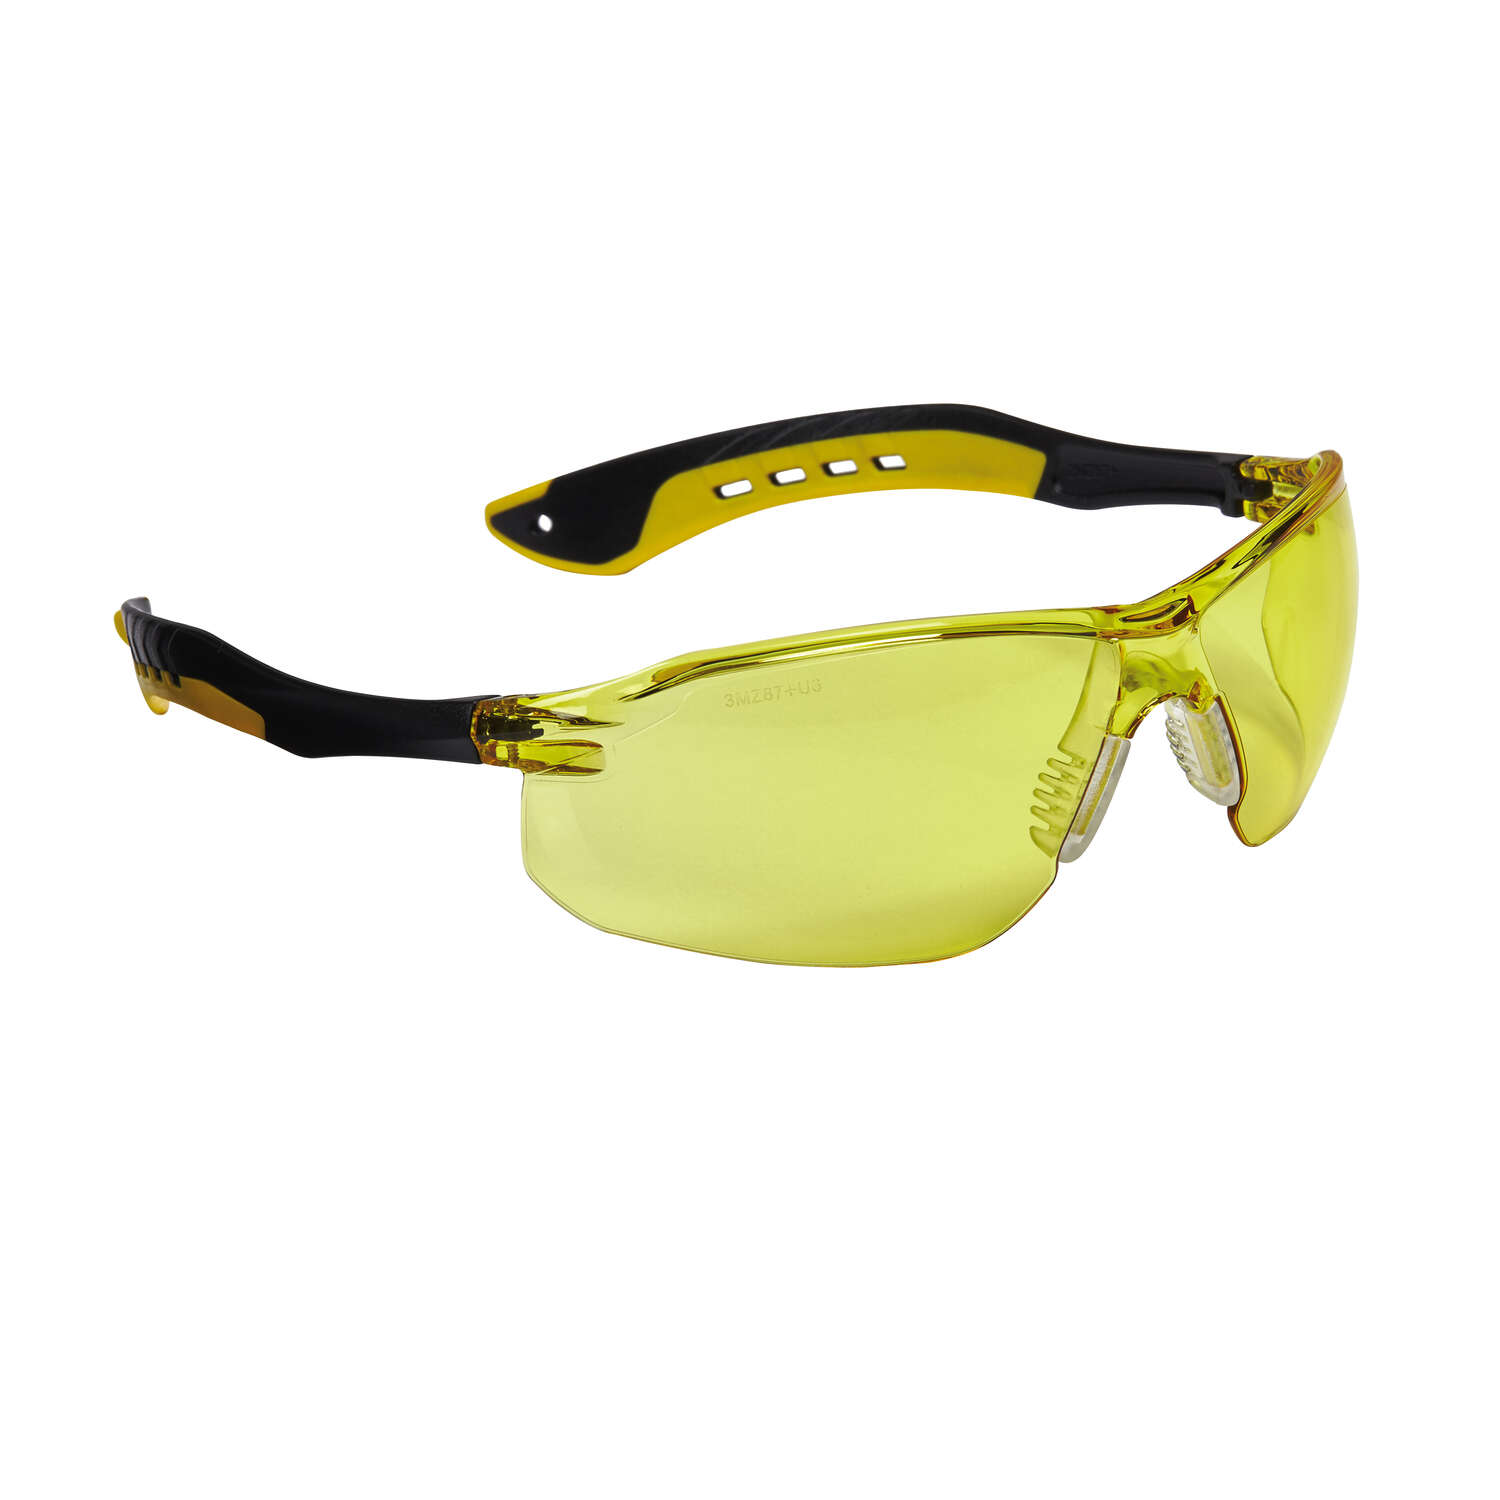 3M  Safety Glasses  Yellow  1 pc. Yellow